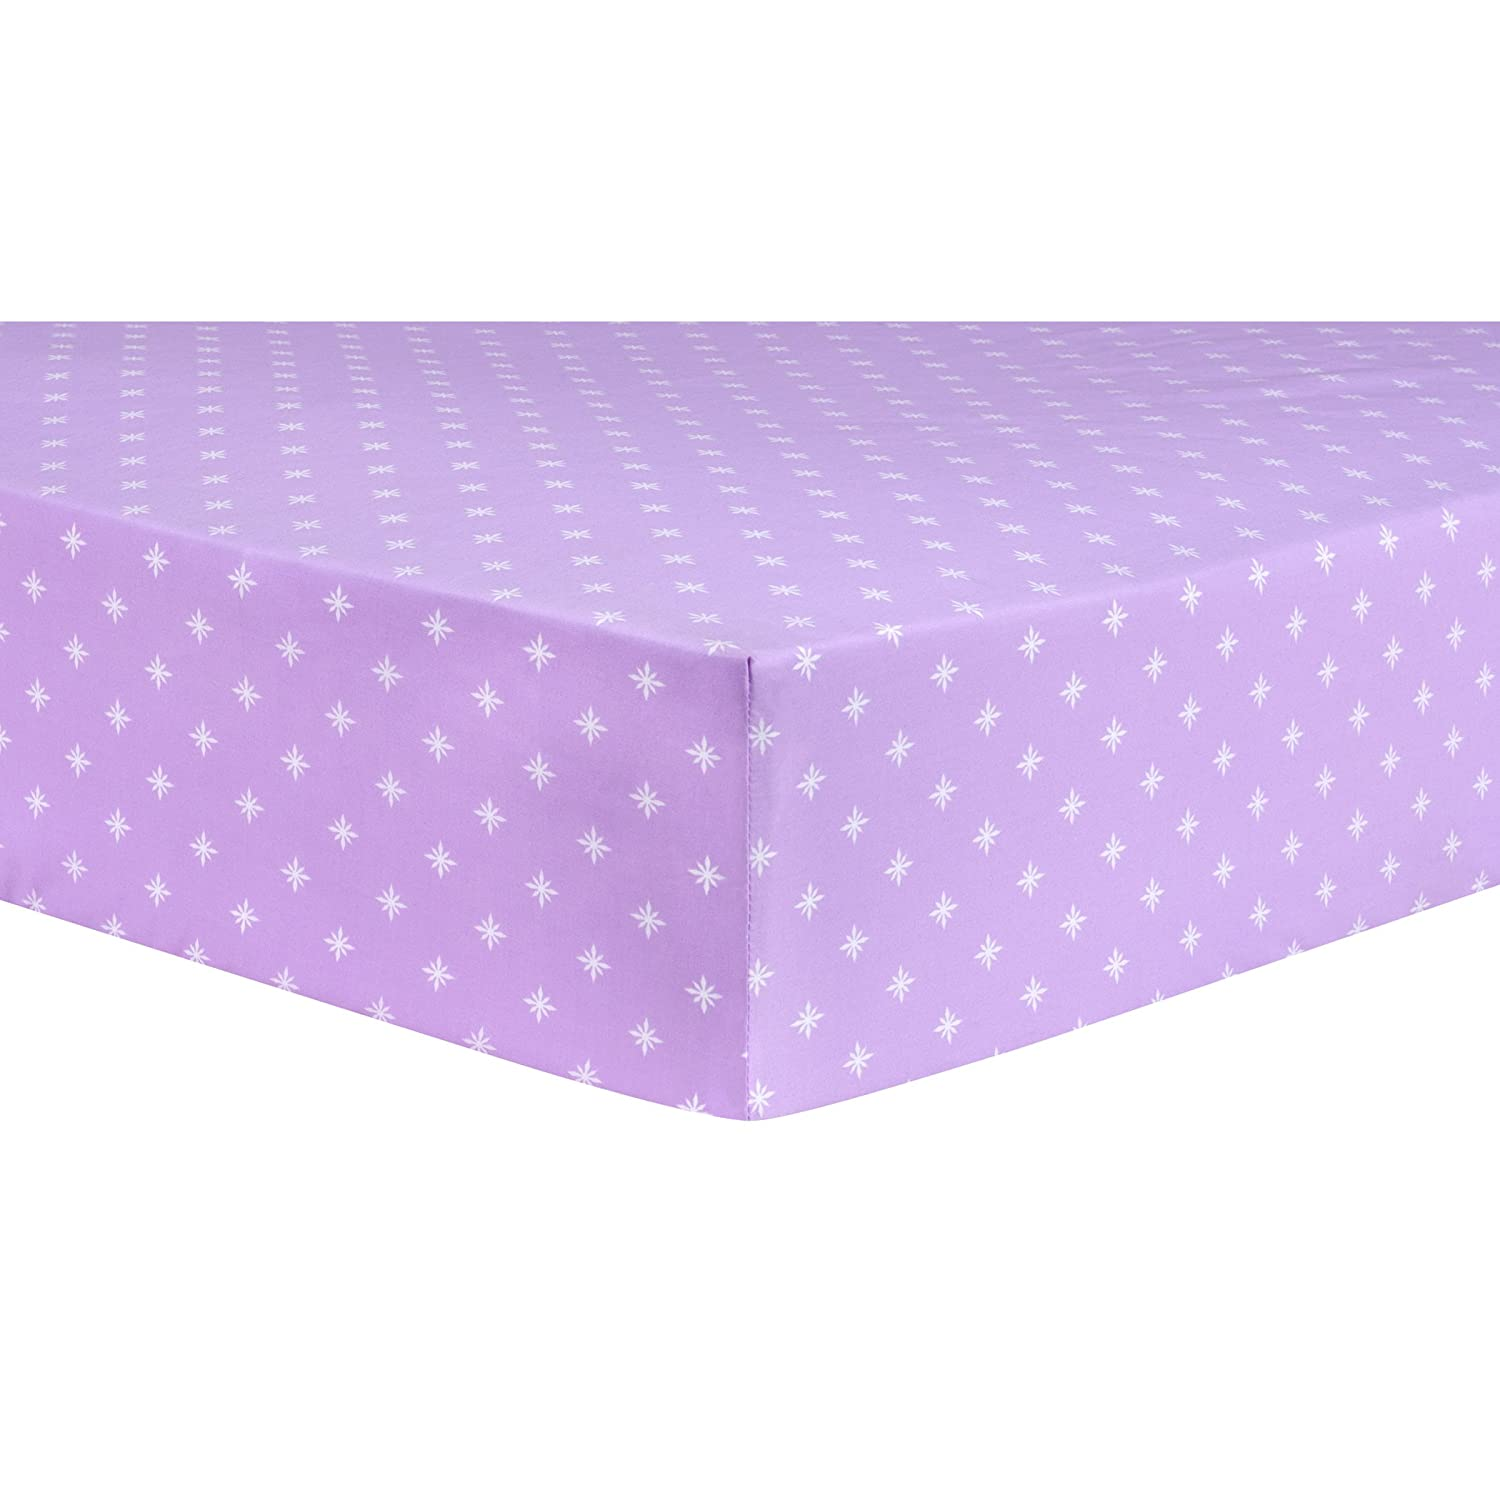 Trend Lab Stars Lavender Fitted Crib Sheet, Purple/White 103239